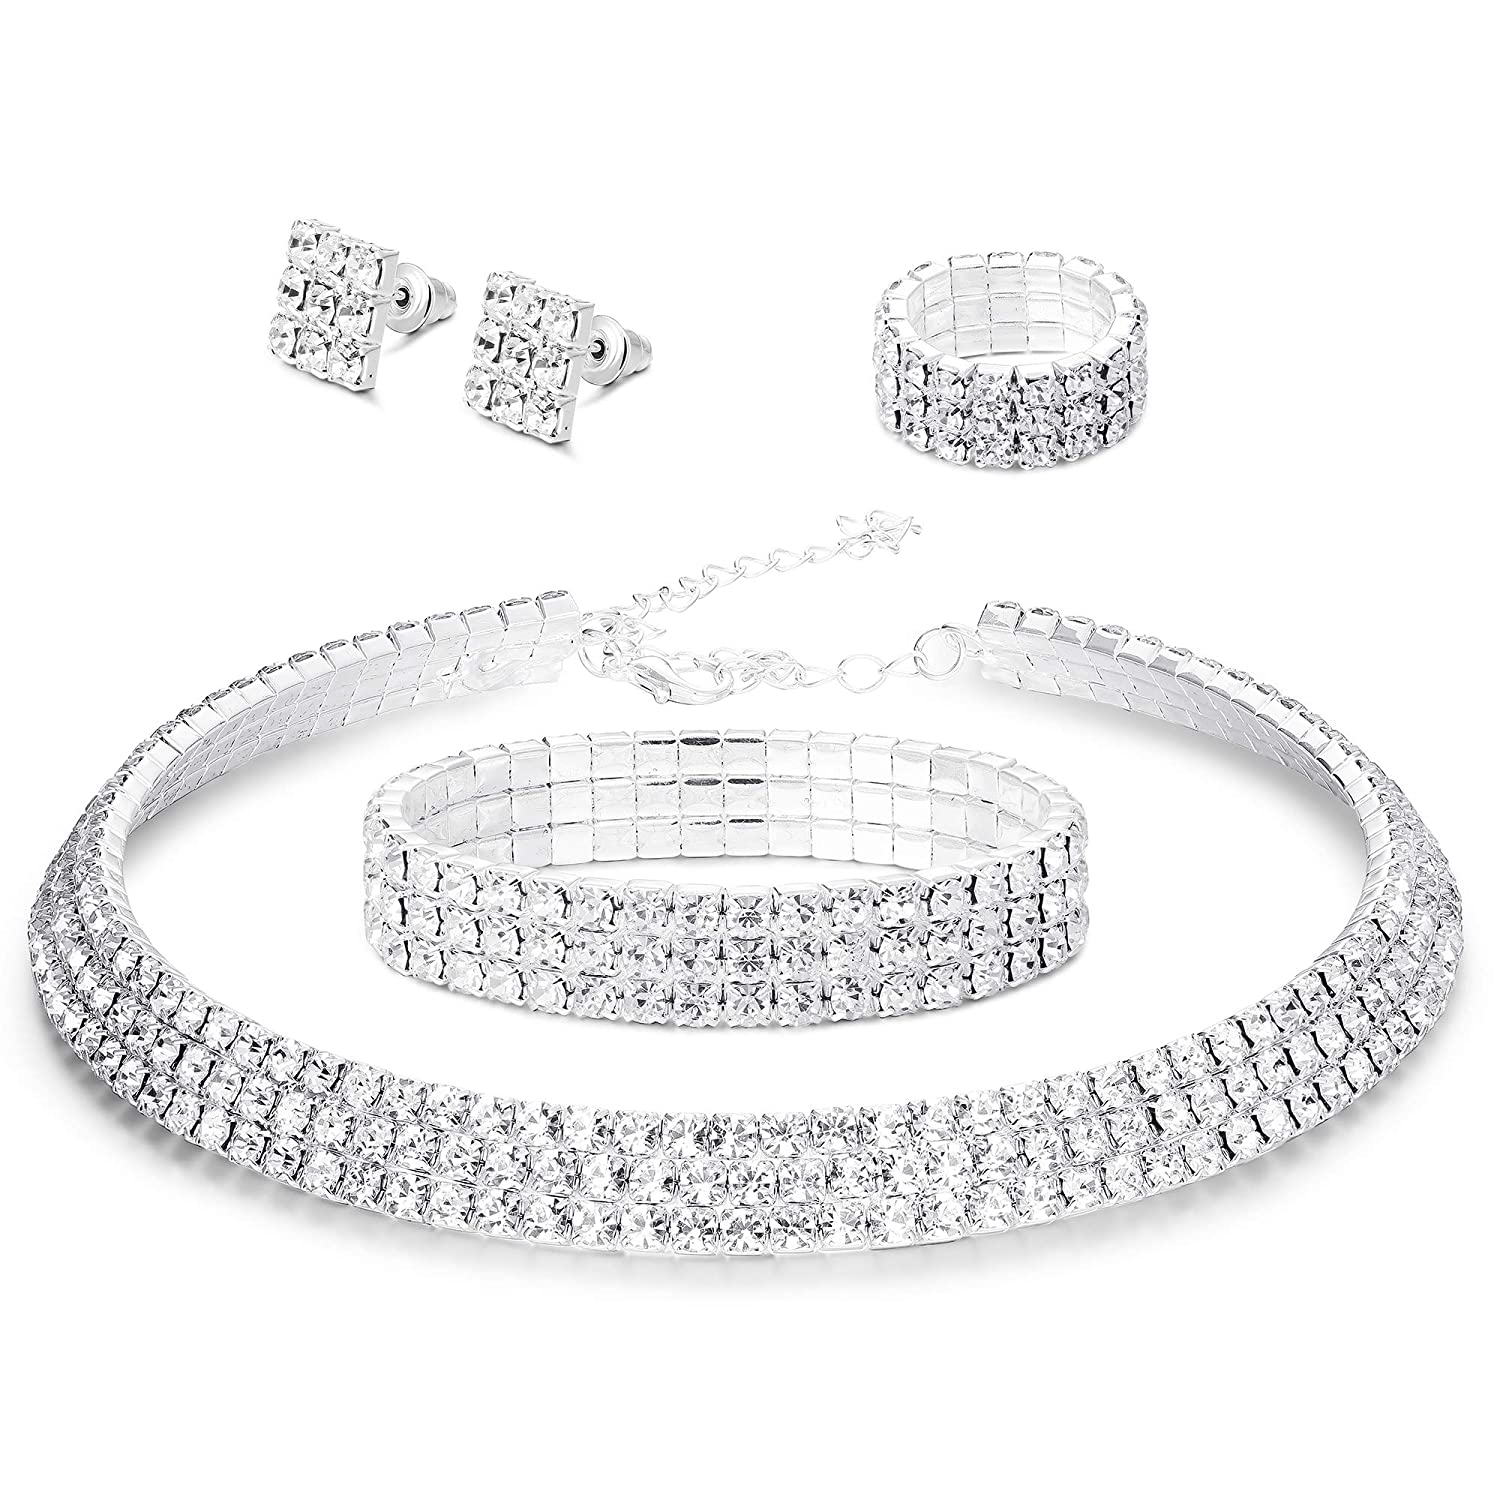 LOYALLOOK Bridal Jewelry Set Crystal Jewelry Set for Women Costume Jewelry for Women Fashion Jewelry Sets LK-Y-N0002-Set